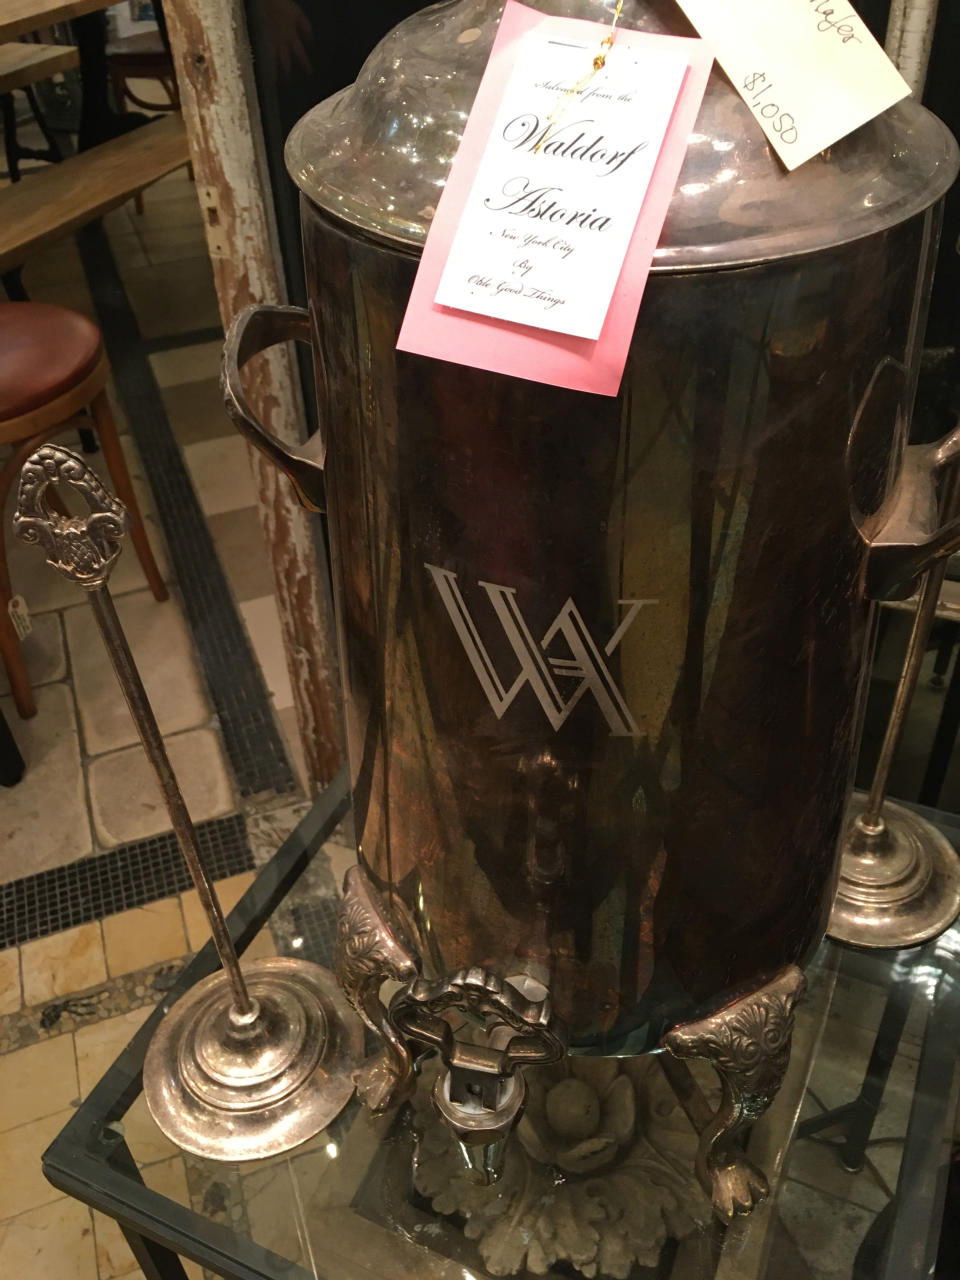 """This Oct. 15, 2019 photo shows an old coffee/tea dispenser from the Waldorf-Astoria Hotel in New York, which is now available for sale at Olde Good Things salvage store in New York. Two of the hottest trends in home decor are sustainability and authenticity. """"It's about both history and sustainability,"""" says Madeline Beauchamp of Olde Good Things, one of the oldest architectural salvage businesses in the country, with one shop in Los Angeles, another in Scranton, Pennsylvania, two stores in New York, and a flagship store to open soon in Midtown Manhattan. (Katherine Roth via AP)"""